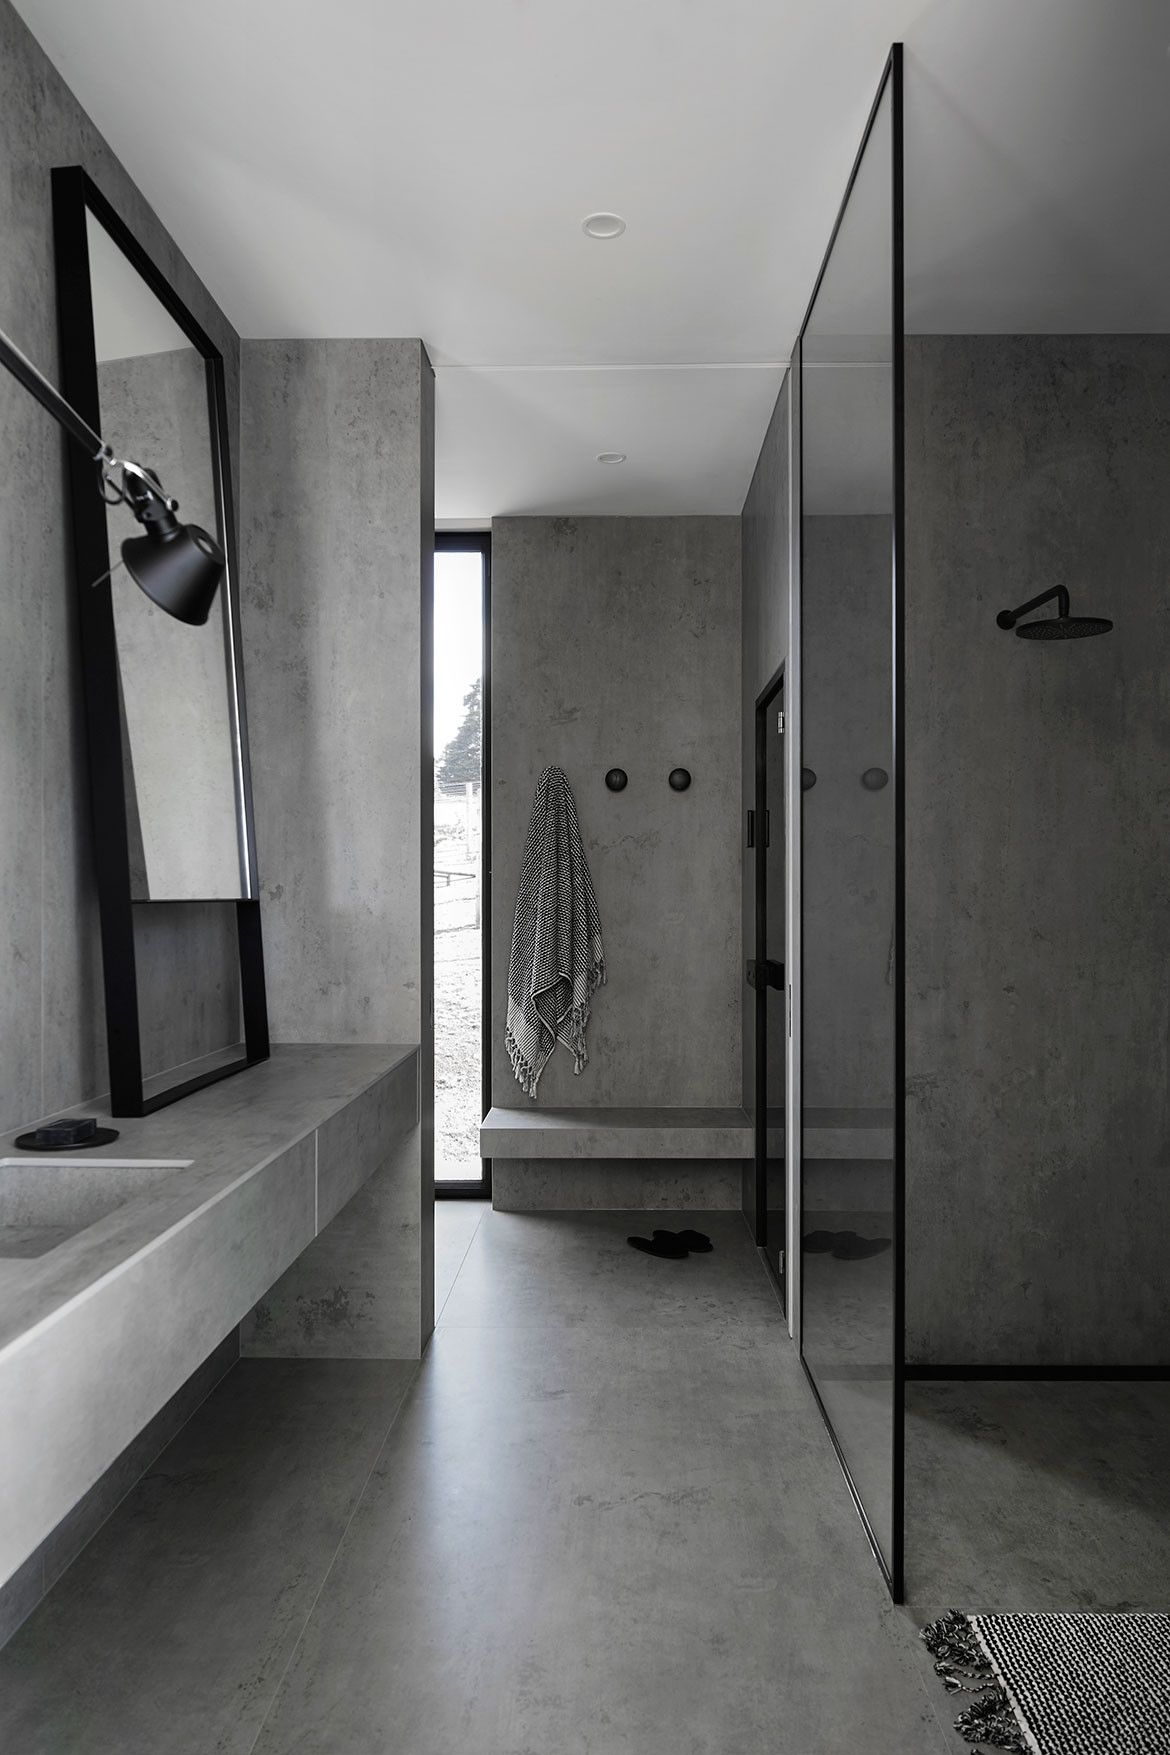 Photo of Bathroom Design That Brings The Outside In | Habitusliving.com